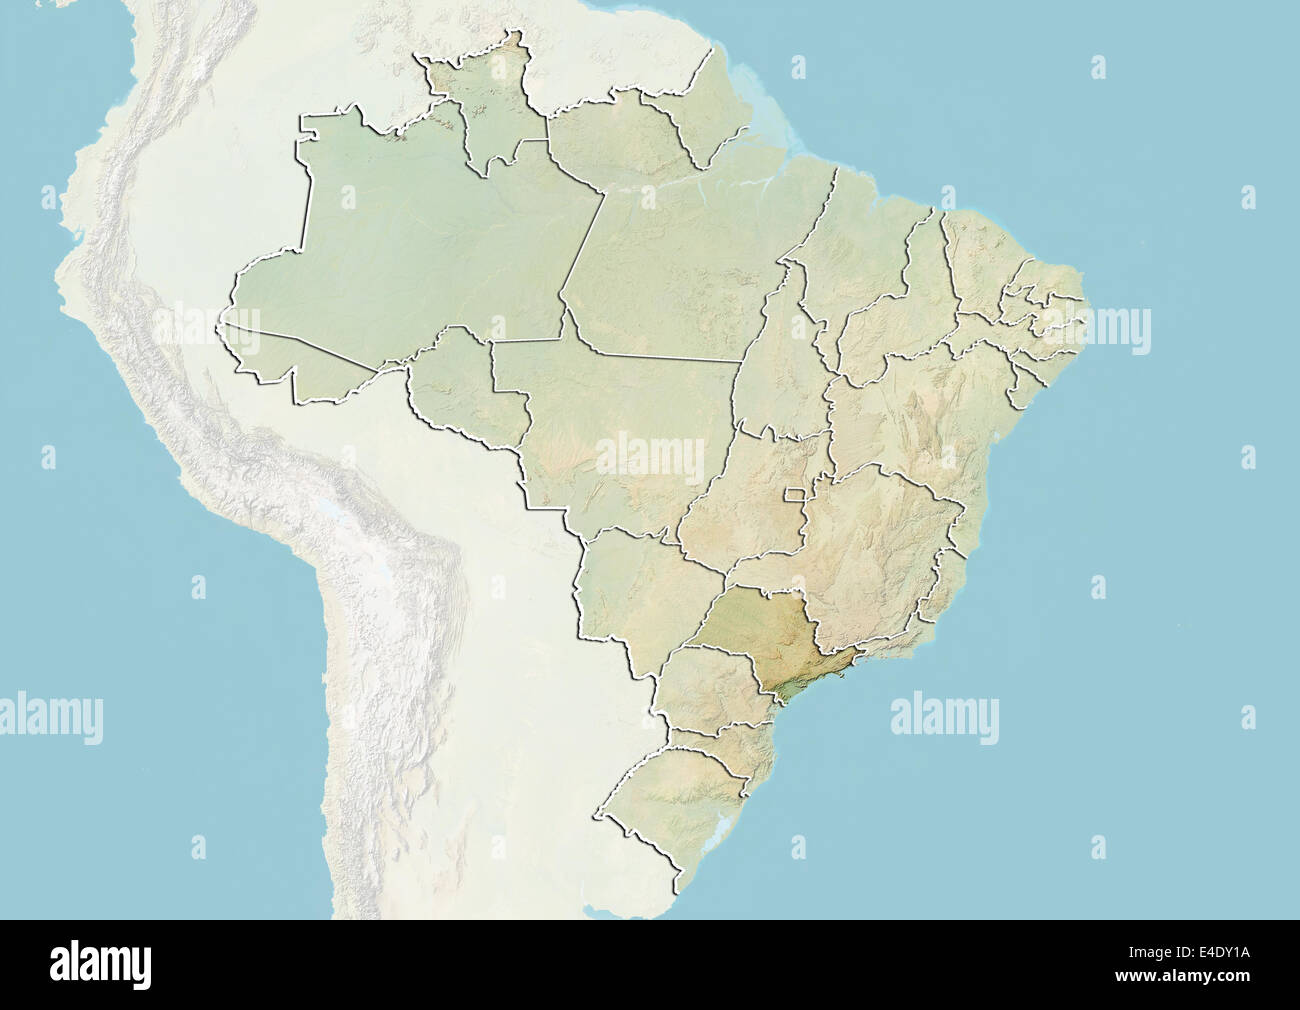 Sao Paulo State Map.Brazil And The State Of Sao Paulo Relief Map Stock Photo 71606678